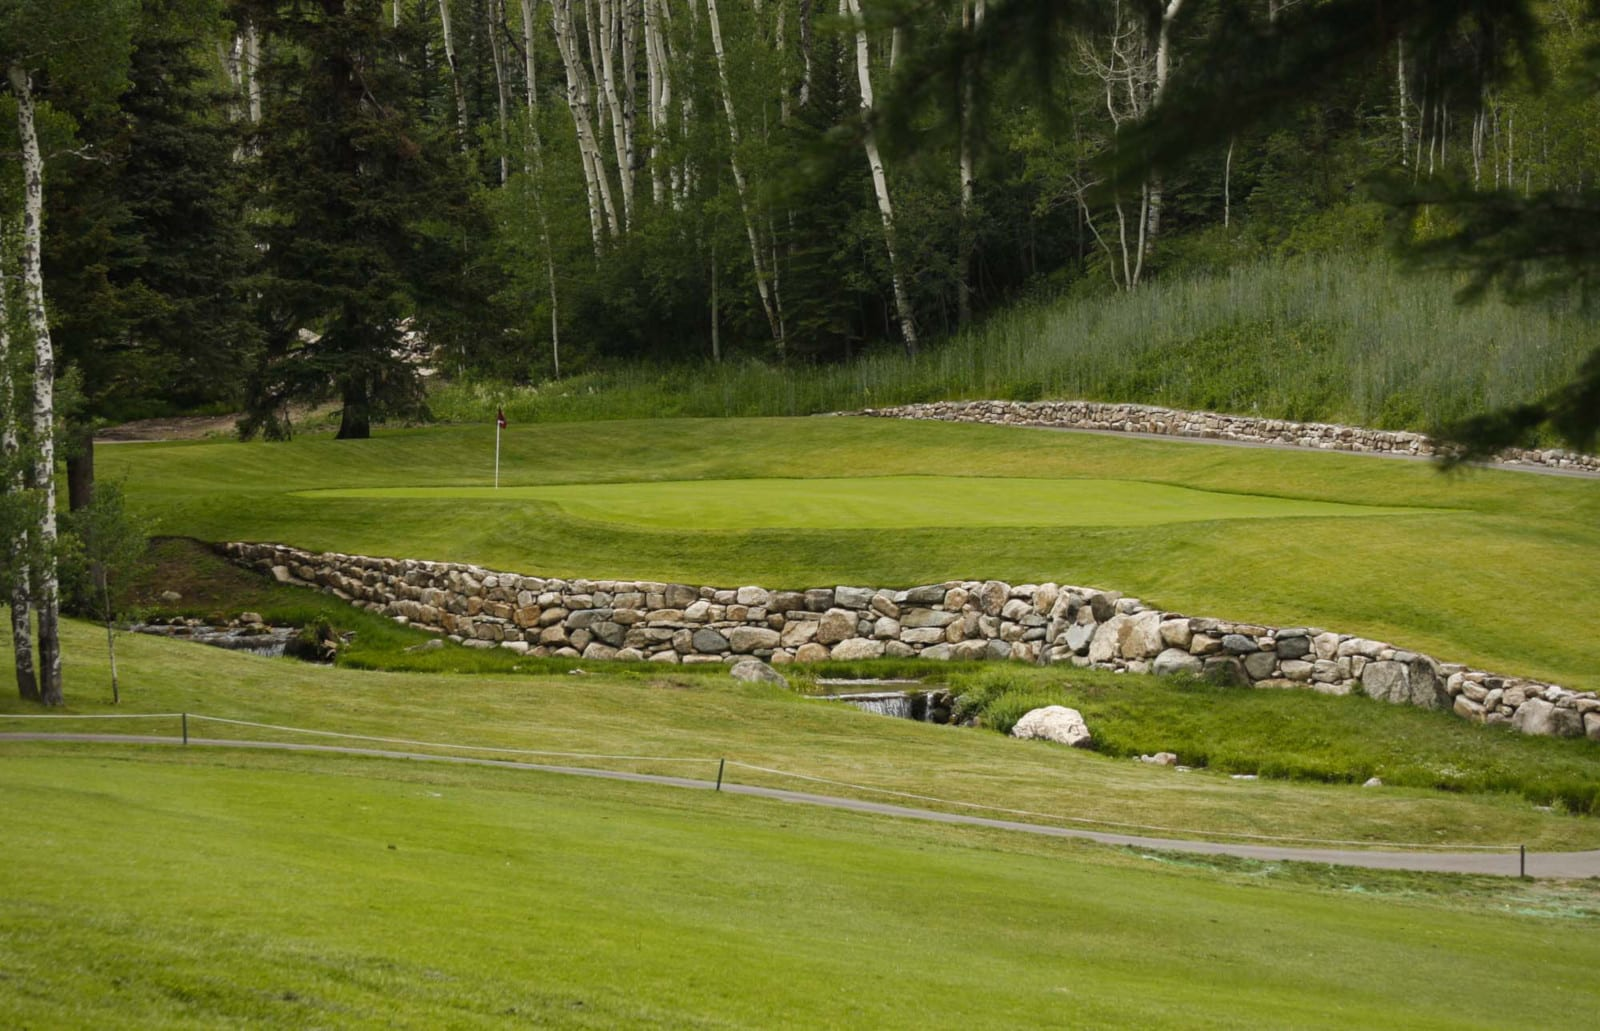 Eagle-Vail Colorado Eagle-Vail Golf Club Green